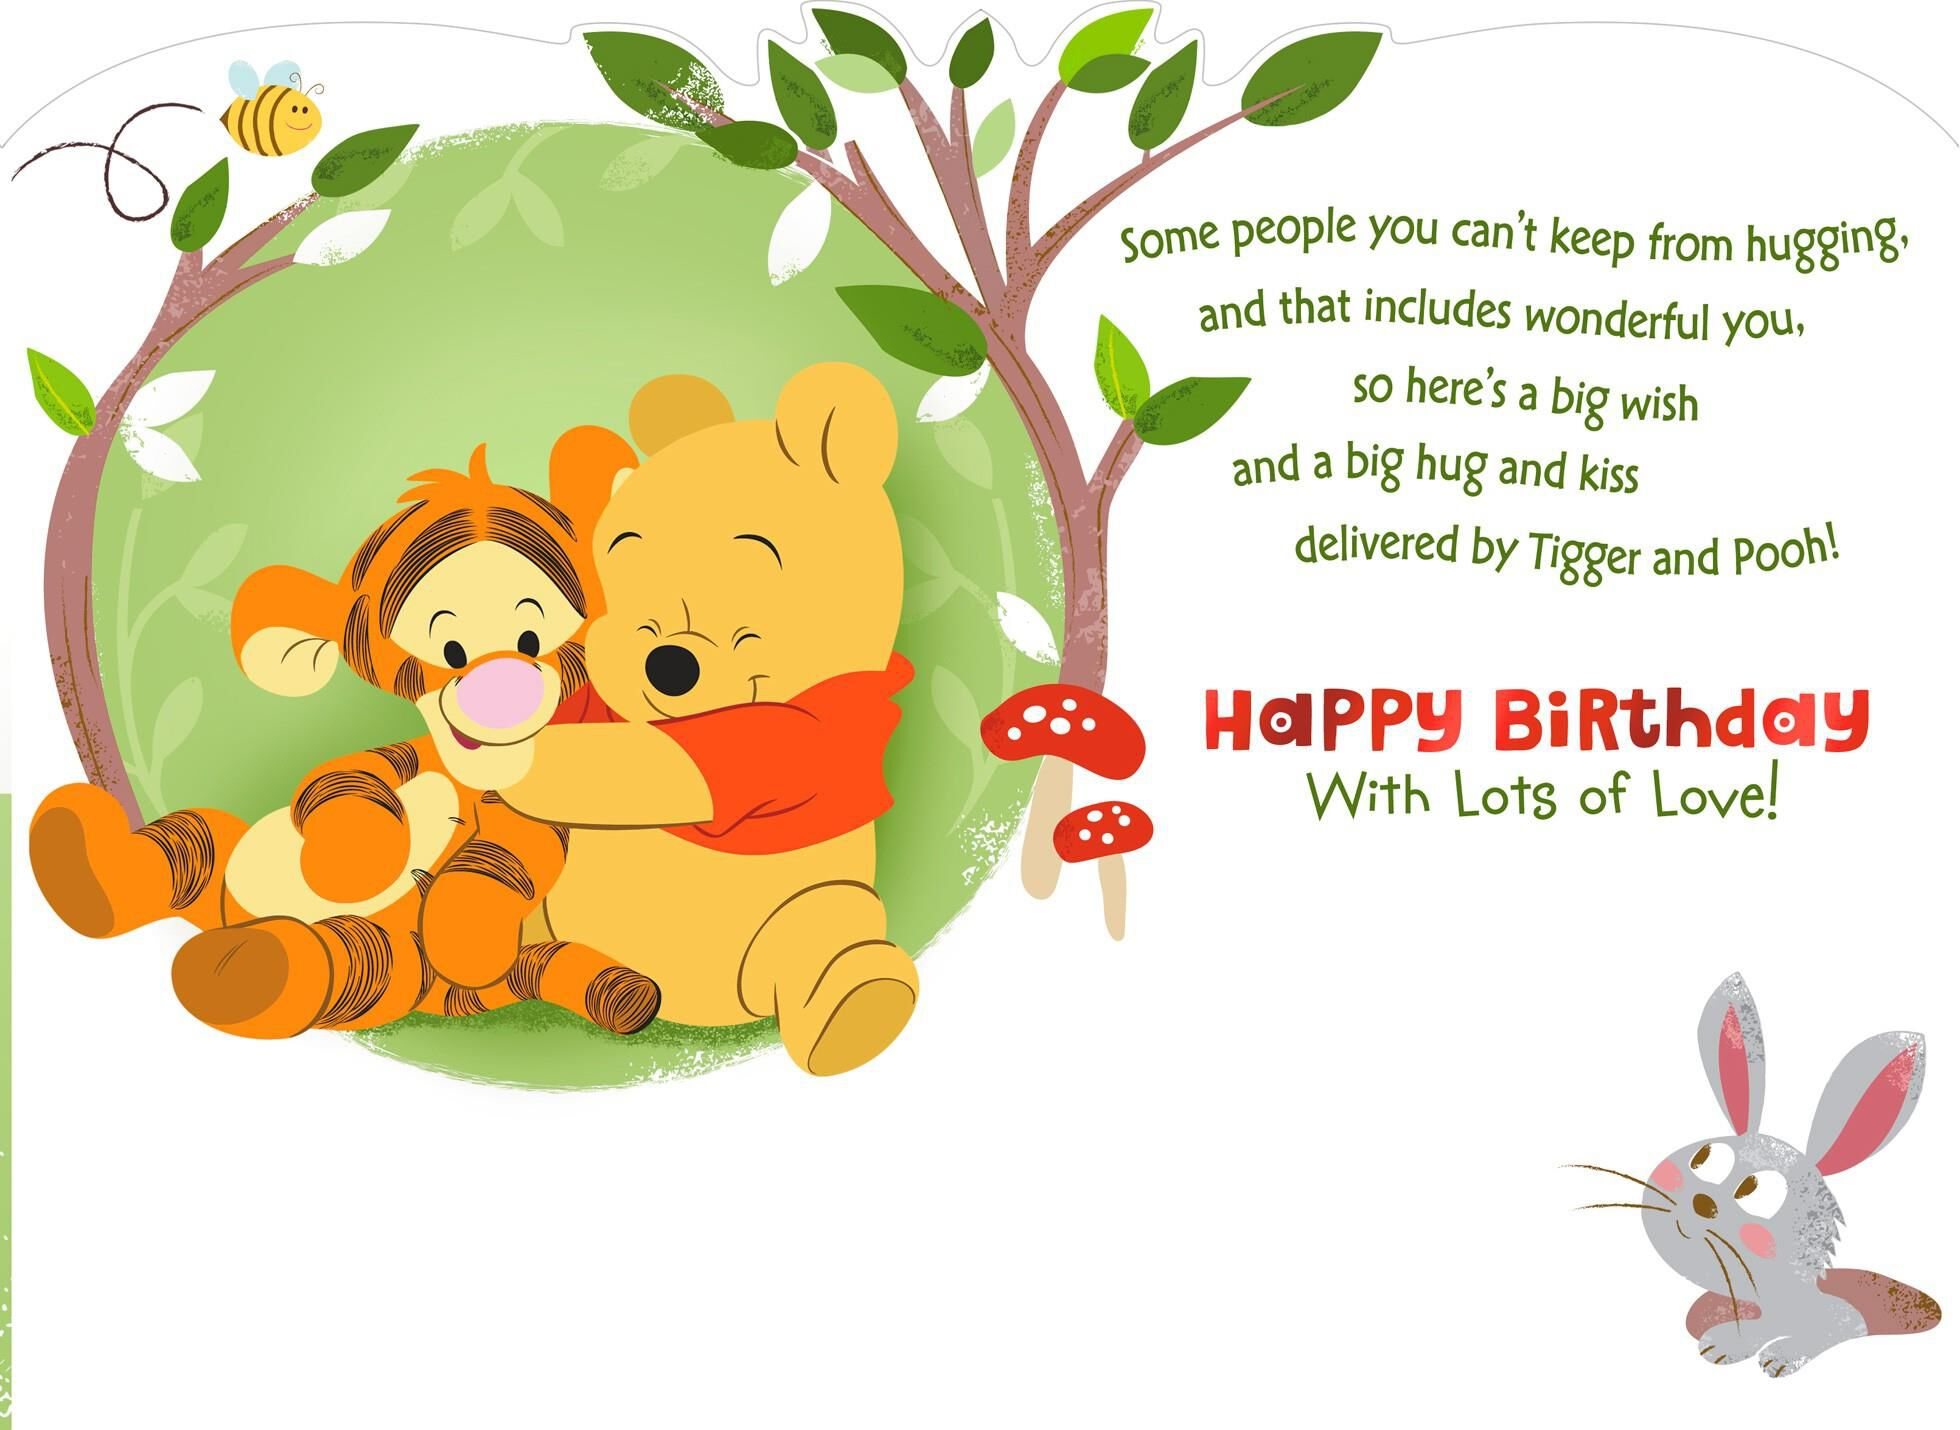 winnie the pooh gifts cards ornaments hallmark rh hallmark com Cute Baby Pooh Bear Baby Pooh Bear and Friends